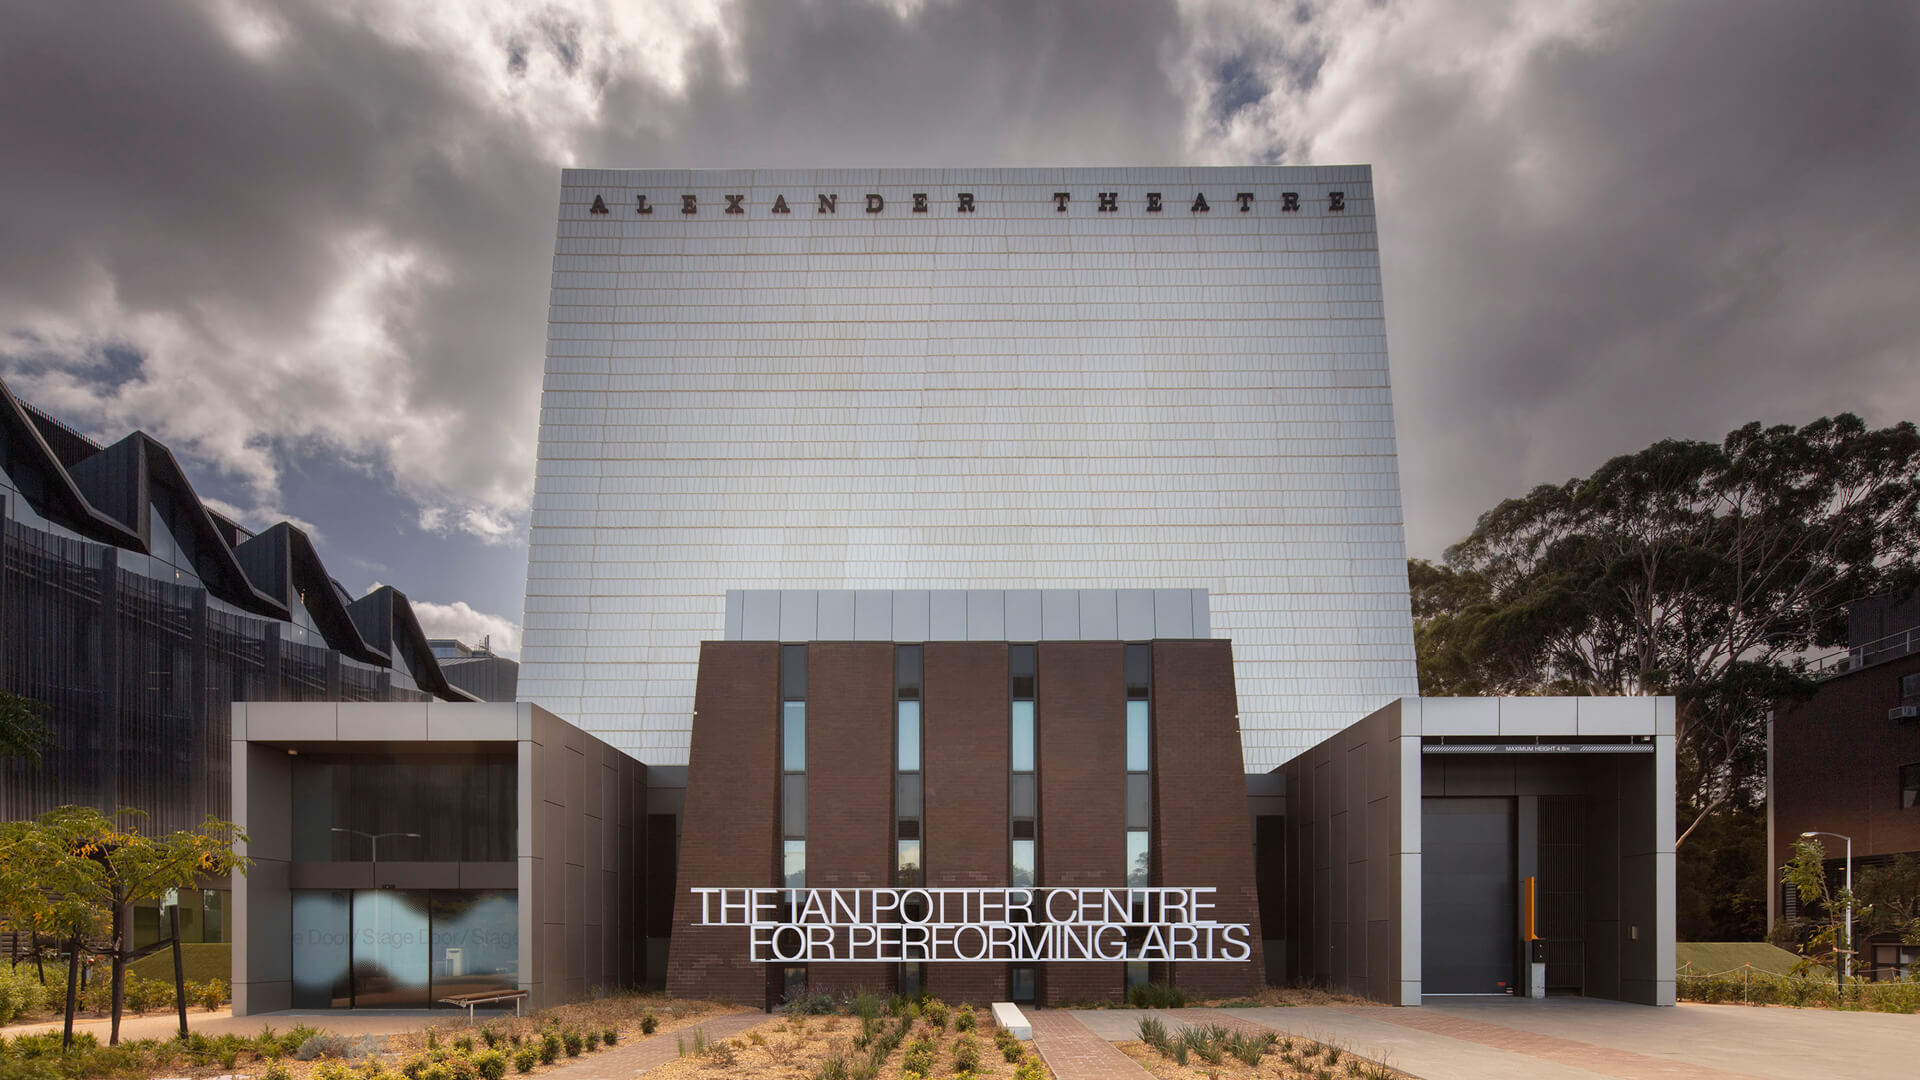 The new Ian Potter Centre designed by Peter Elliot Architecture + Urban Design in Clayton, Australia | Ian Potter Center for Performing Arts | Peter Elliot Architecture + Urban Design | STIRworld